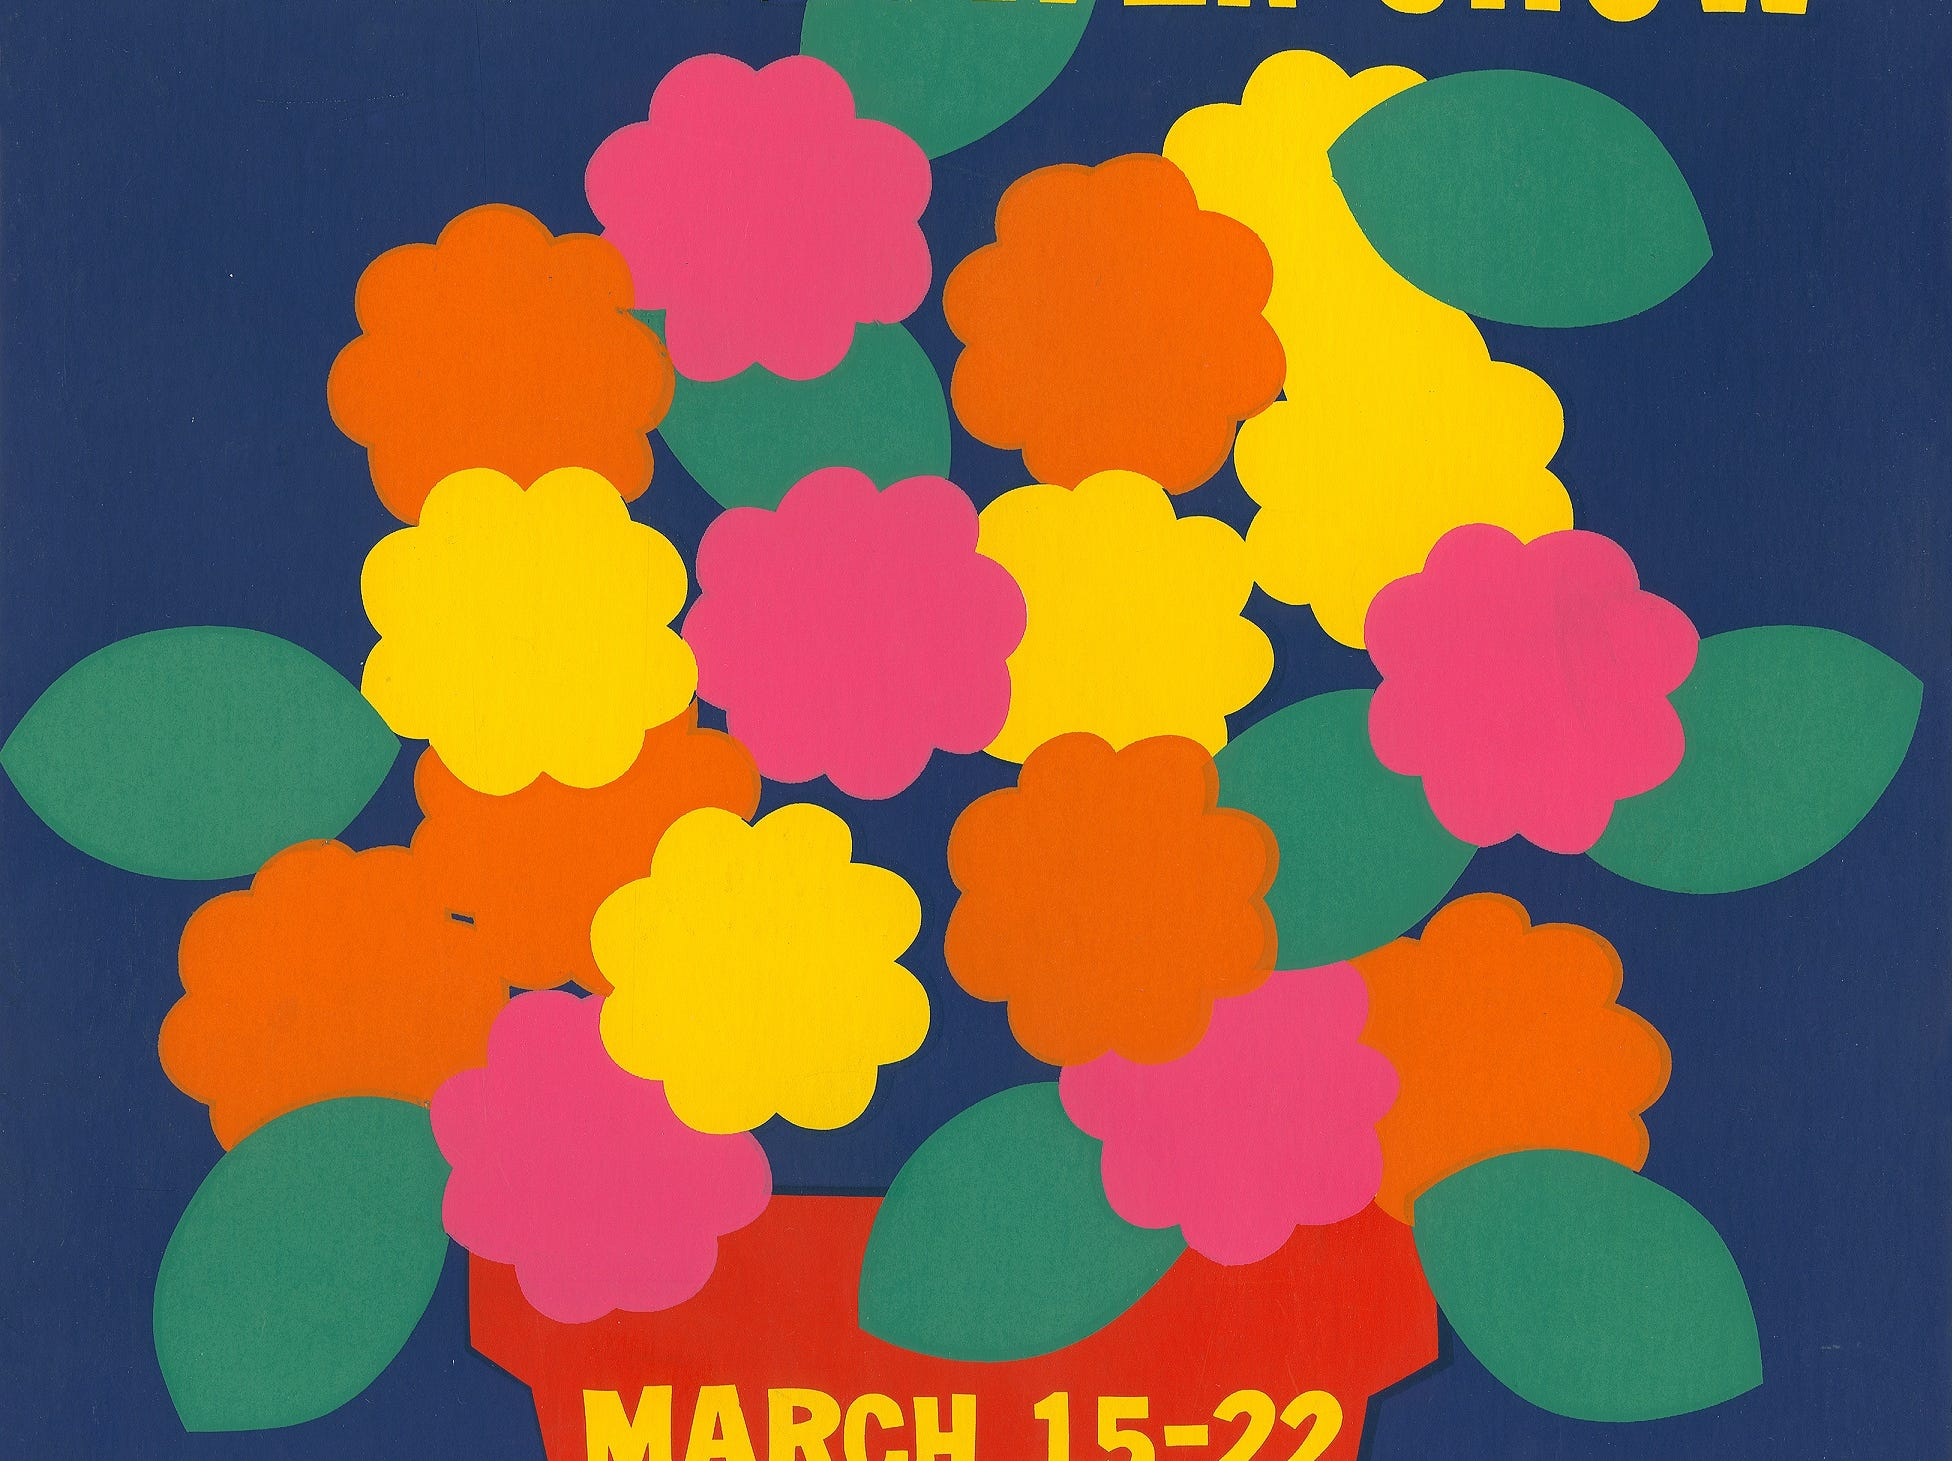 A poster from the 1970 Philadelphia Flower Show.